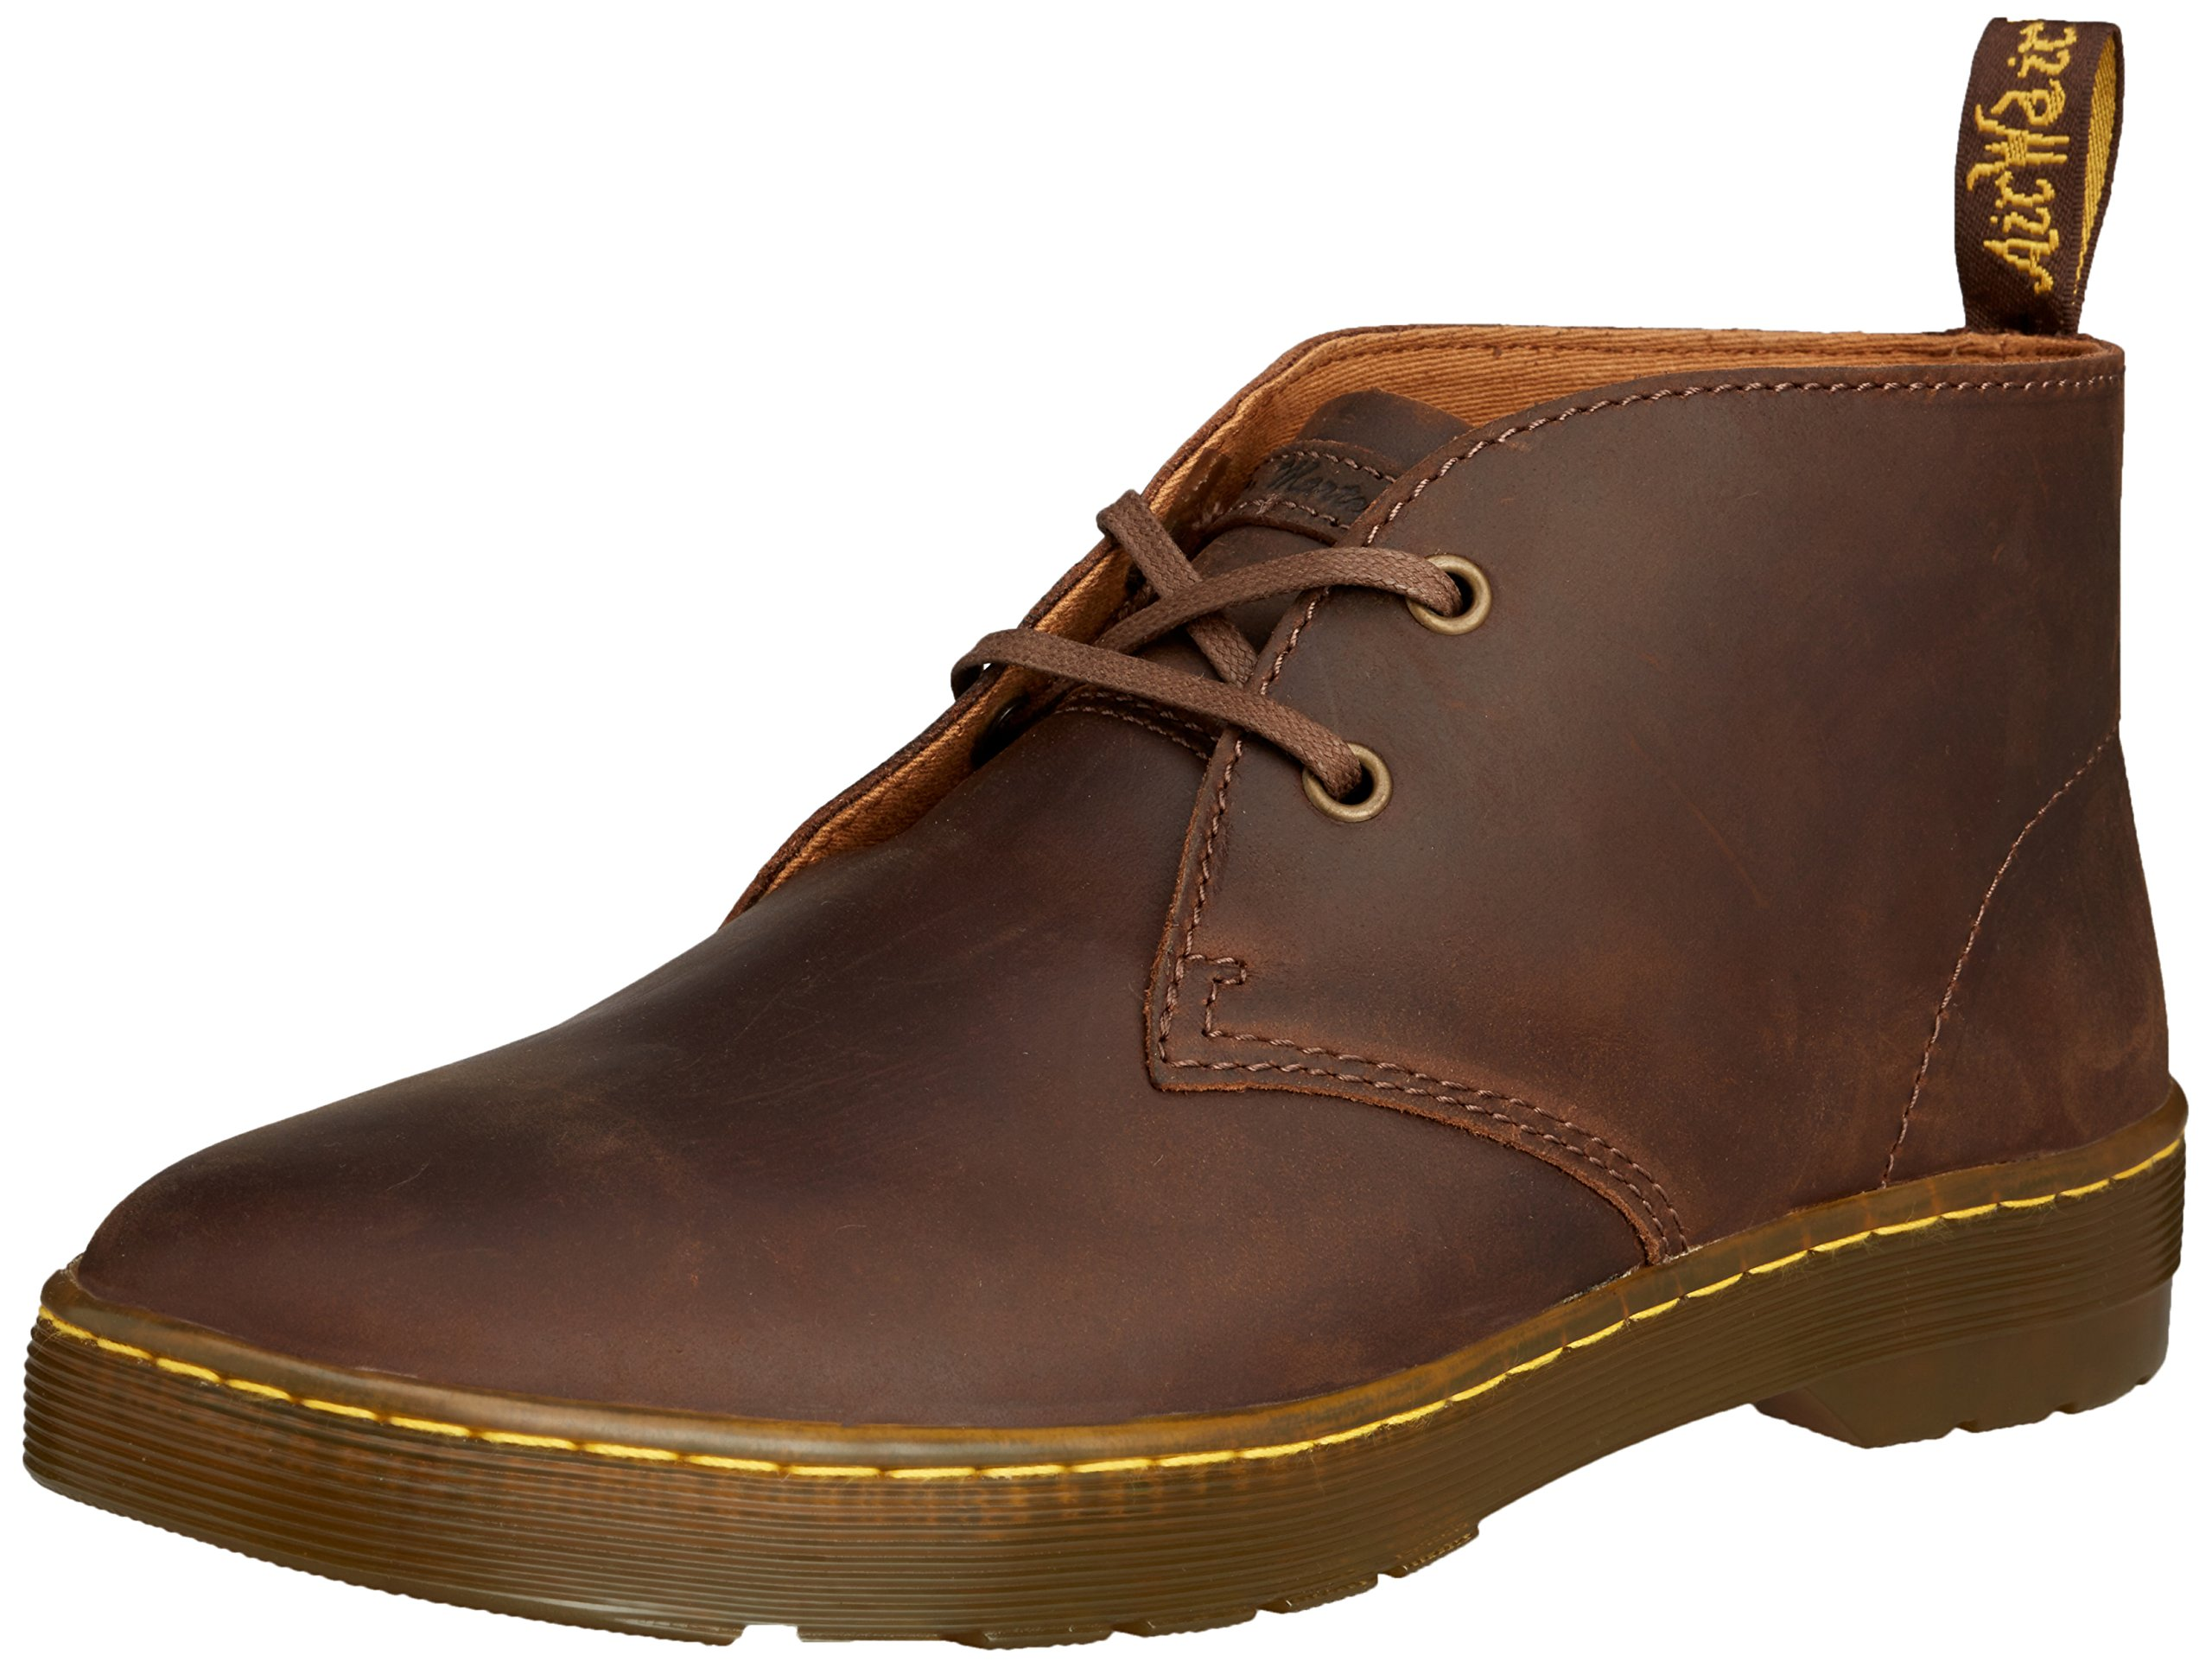 Dr. Martens Men's Cabrillo Chukka Boot, Gaucho, 10 UK/11 M US